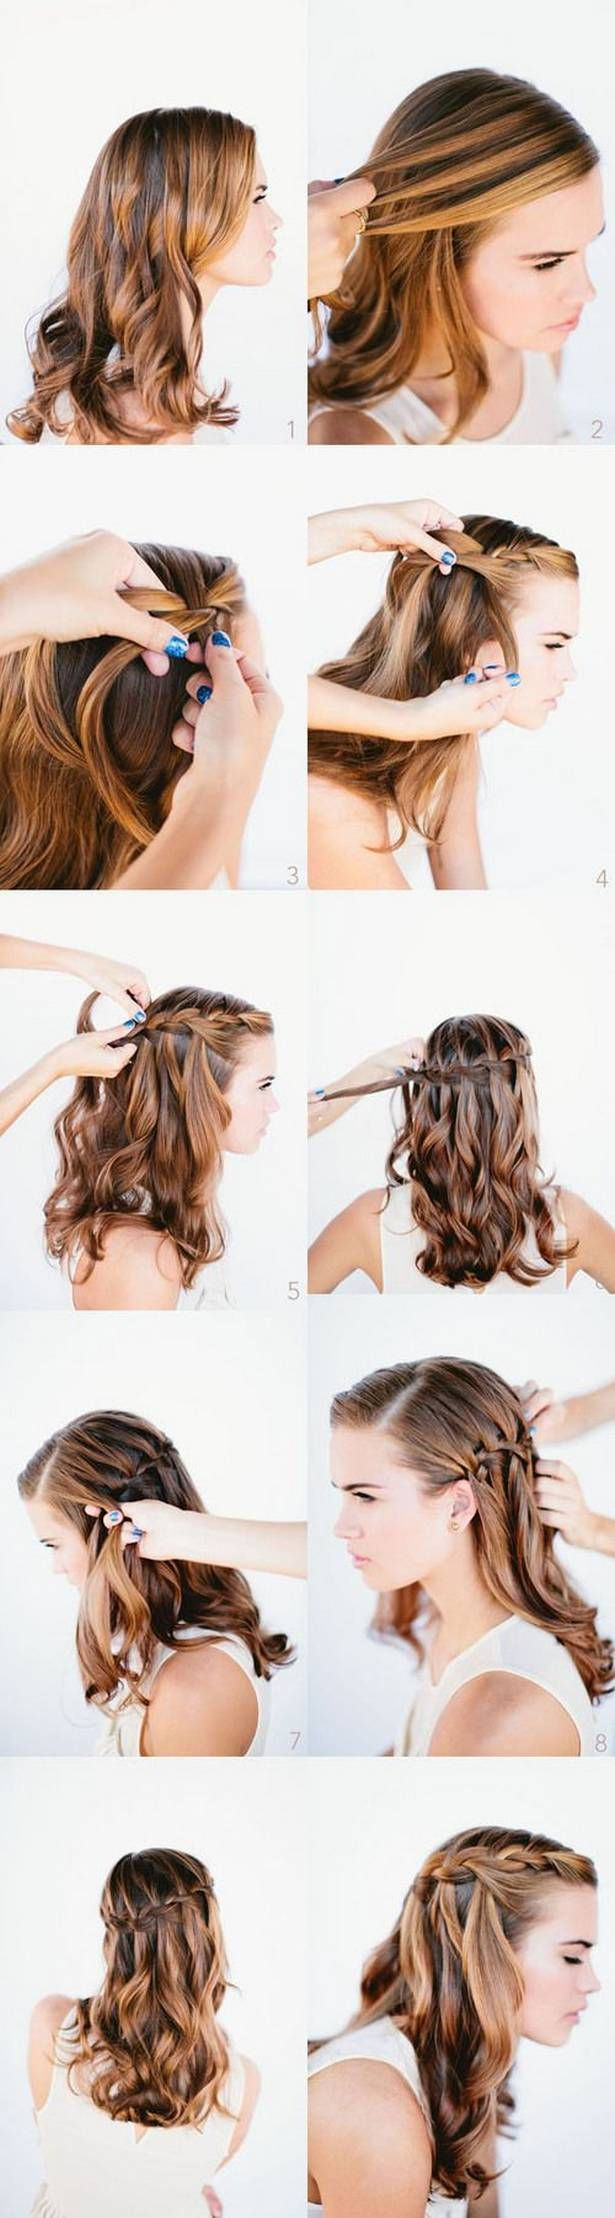 Easy Hairstyles For Short Hair To Do At Home Step By Step  Easy hairstyles for long hair to do at home step by step